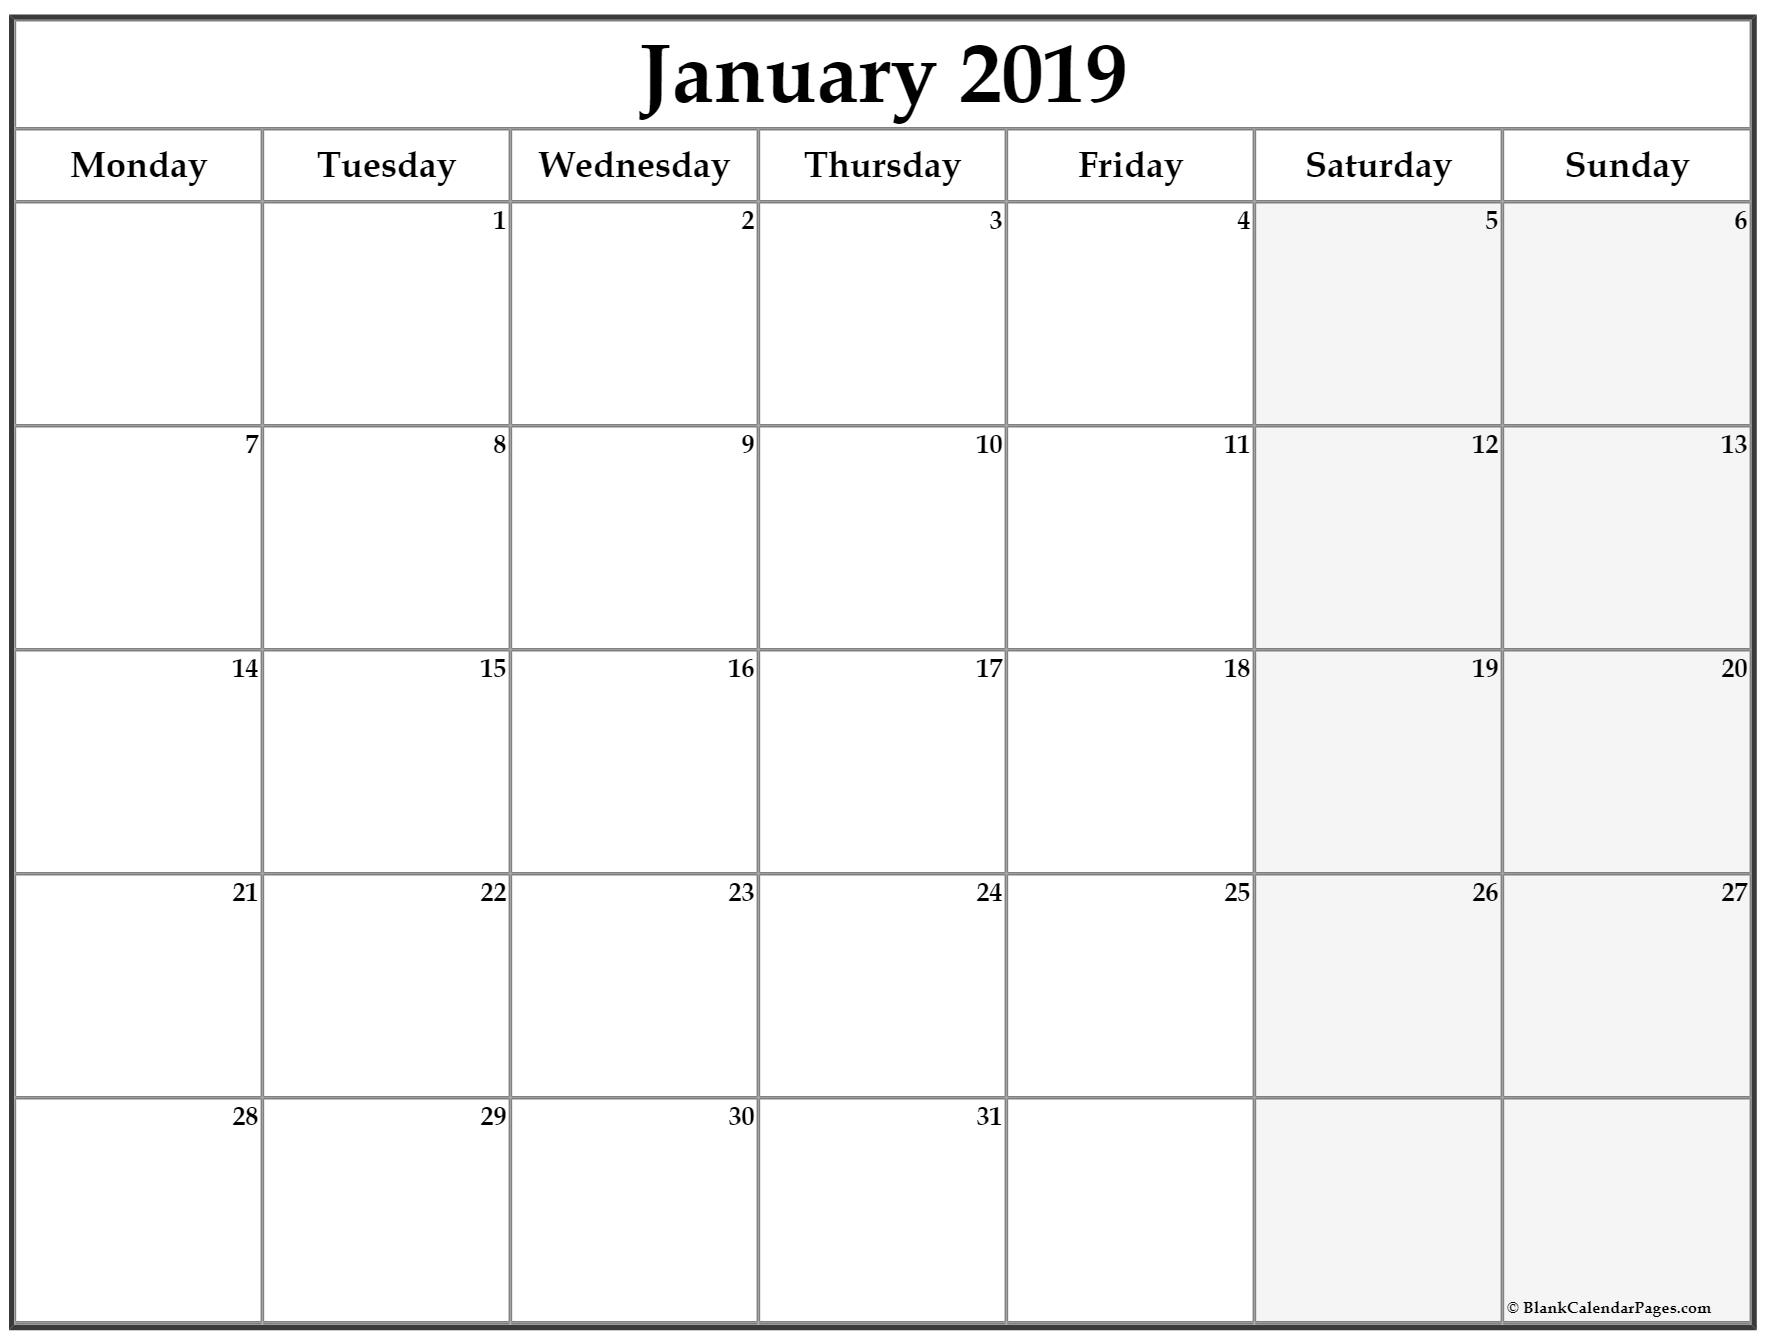 January 2019 Monday Calendar | Monday To Sunday